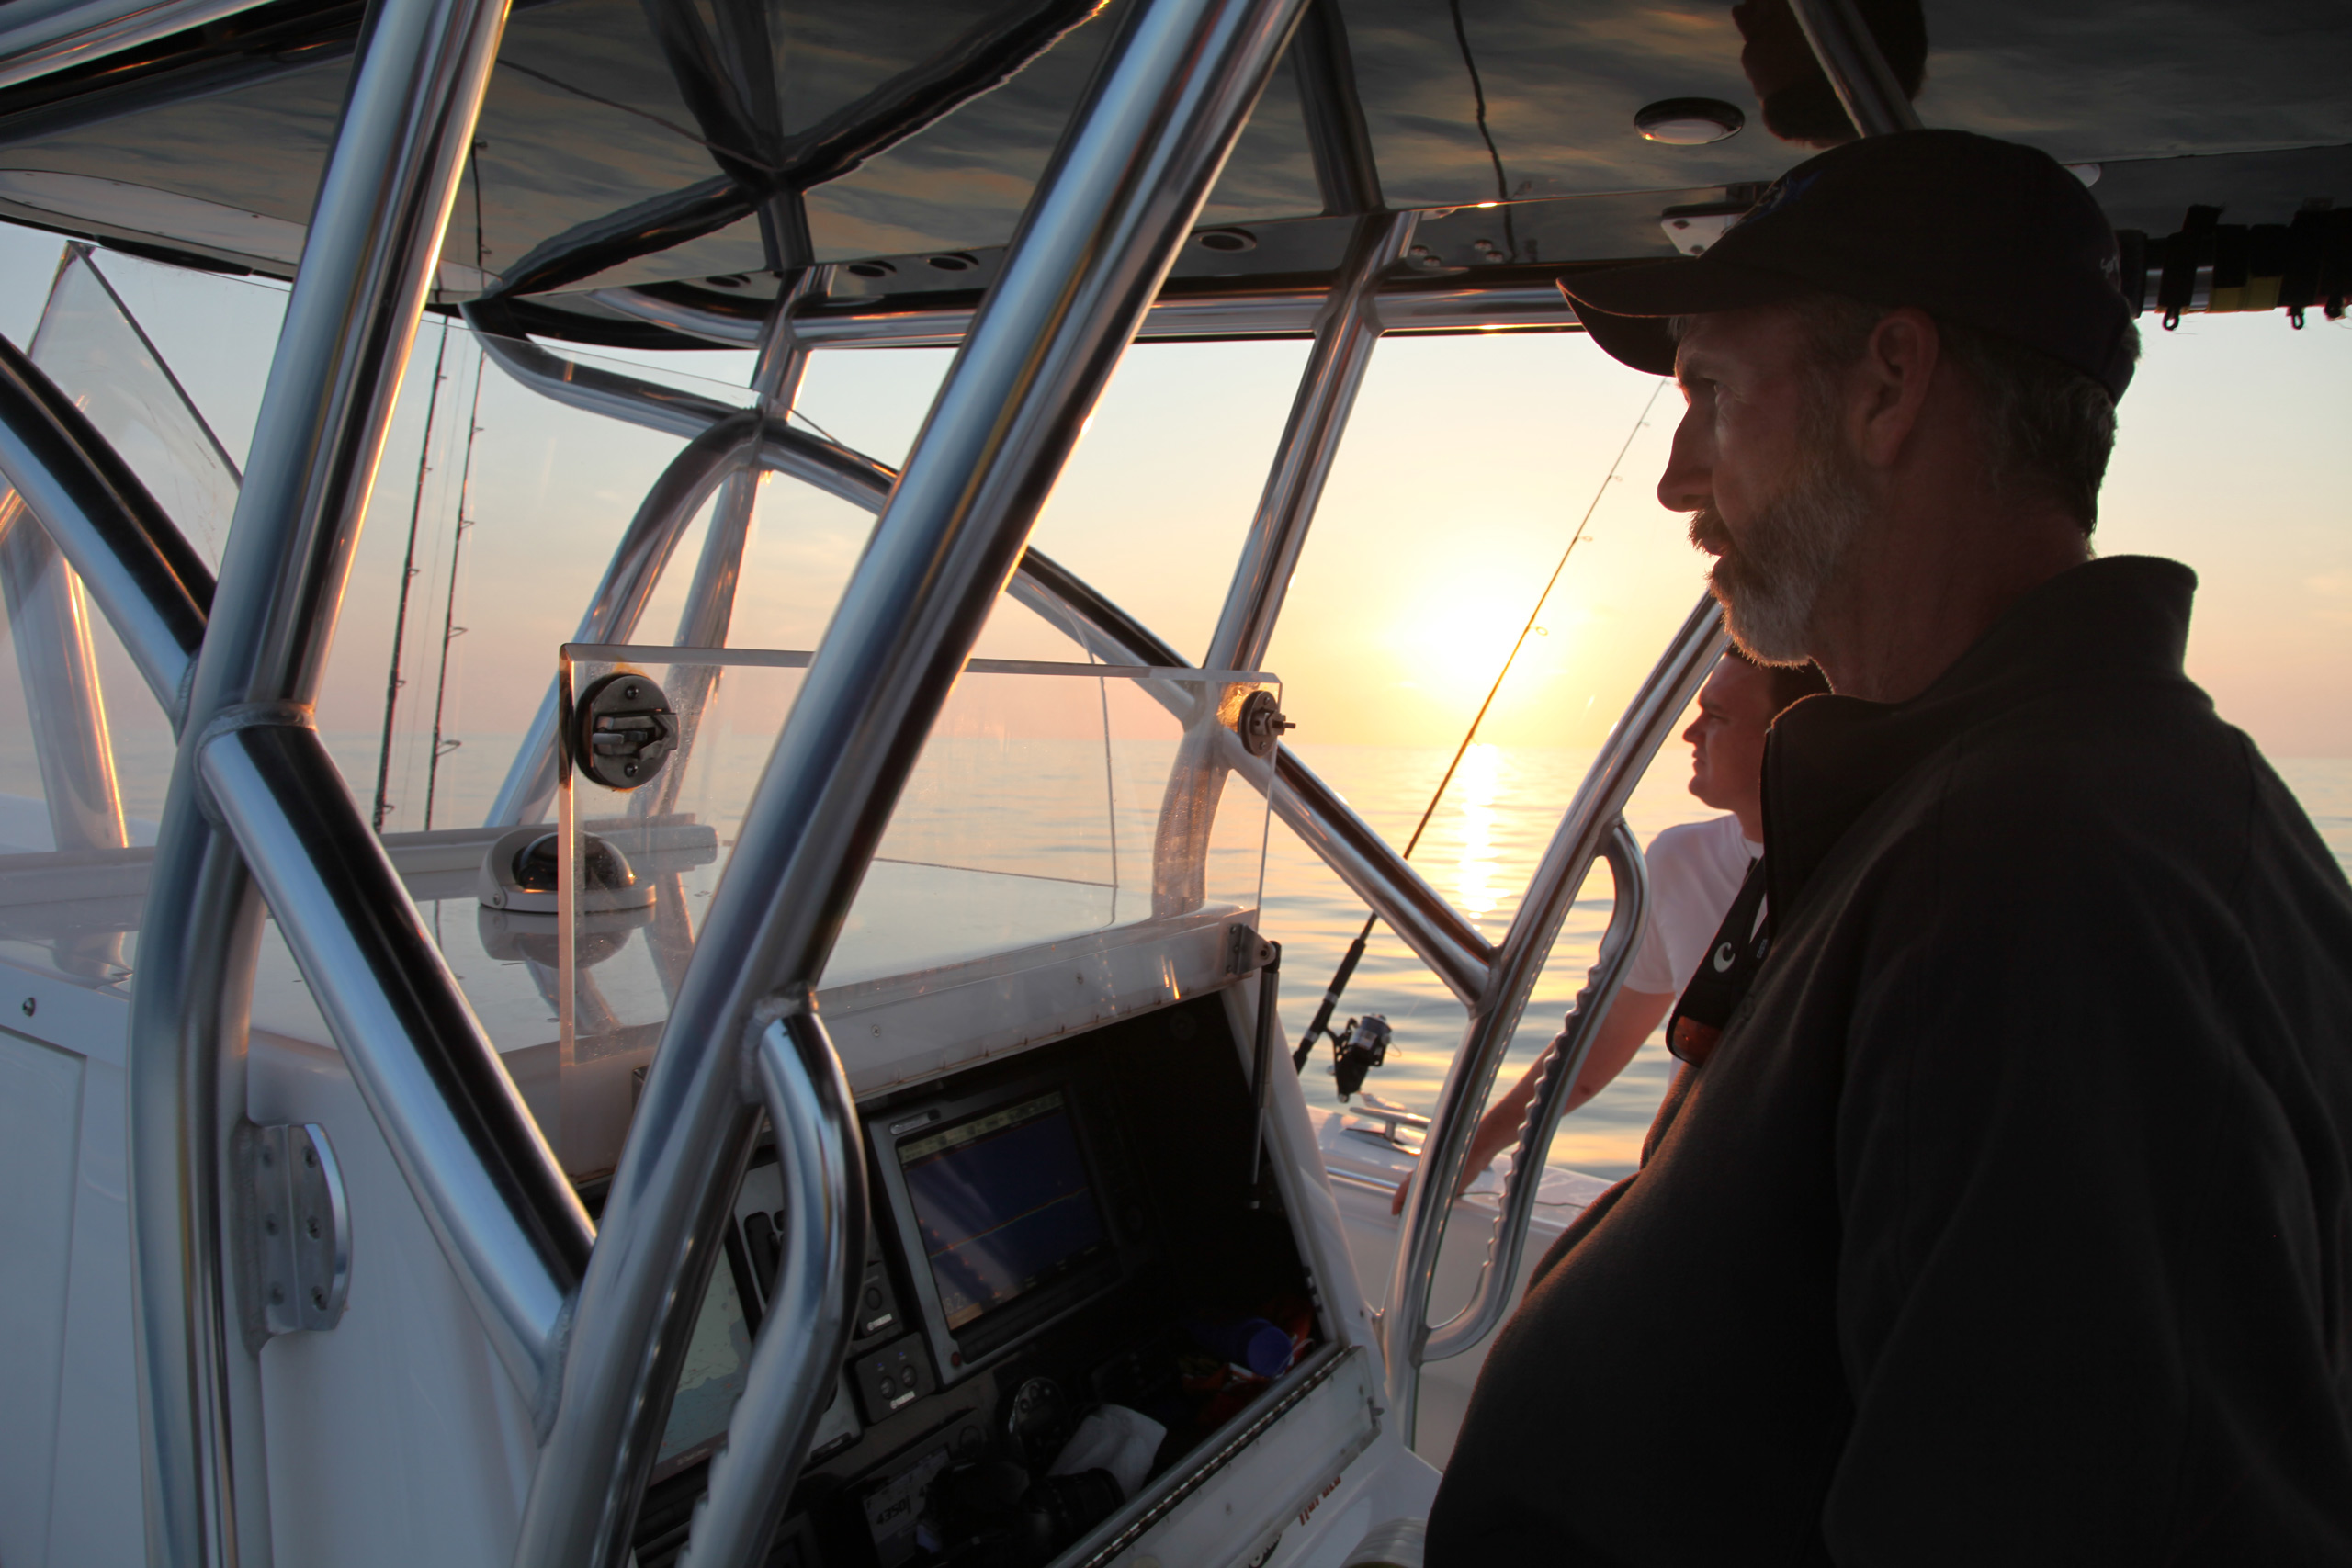 Capt Mike Wienhofer driving the boat out at sunrise